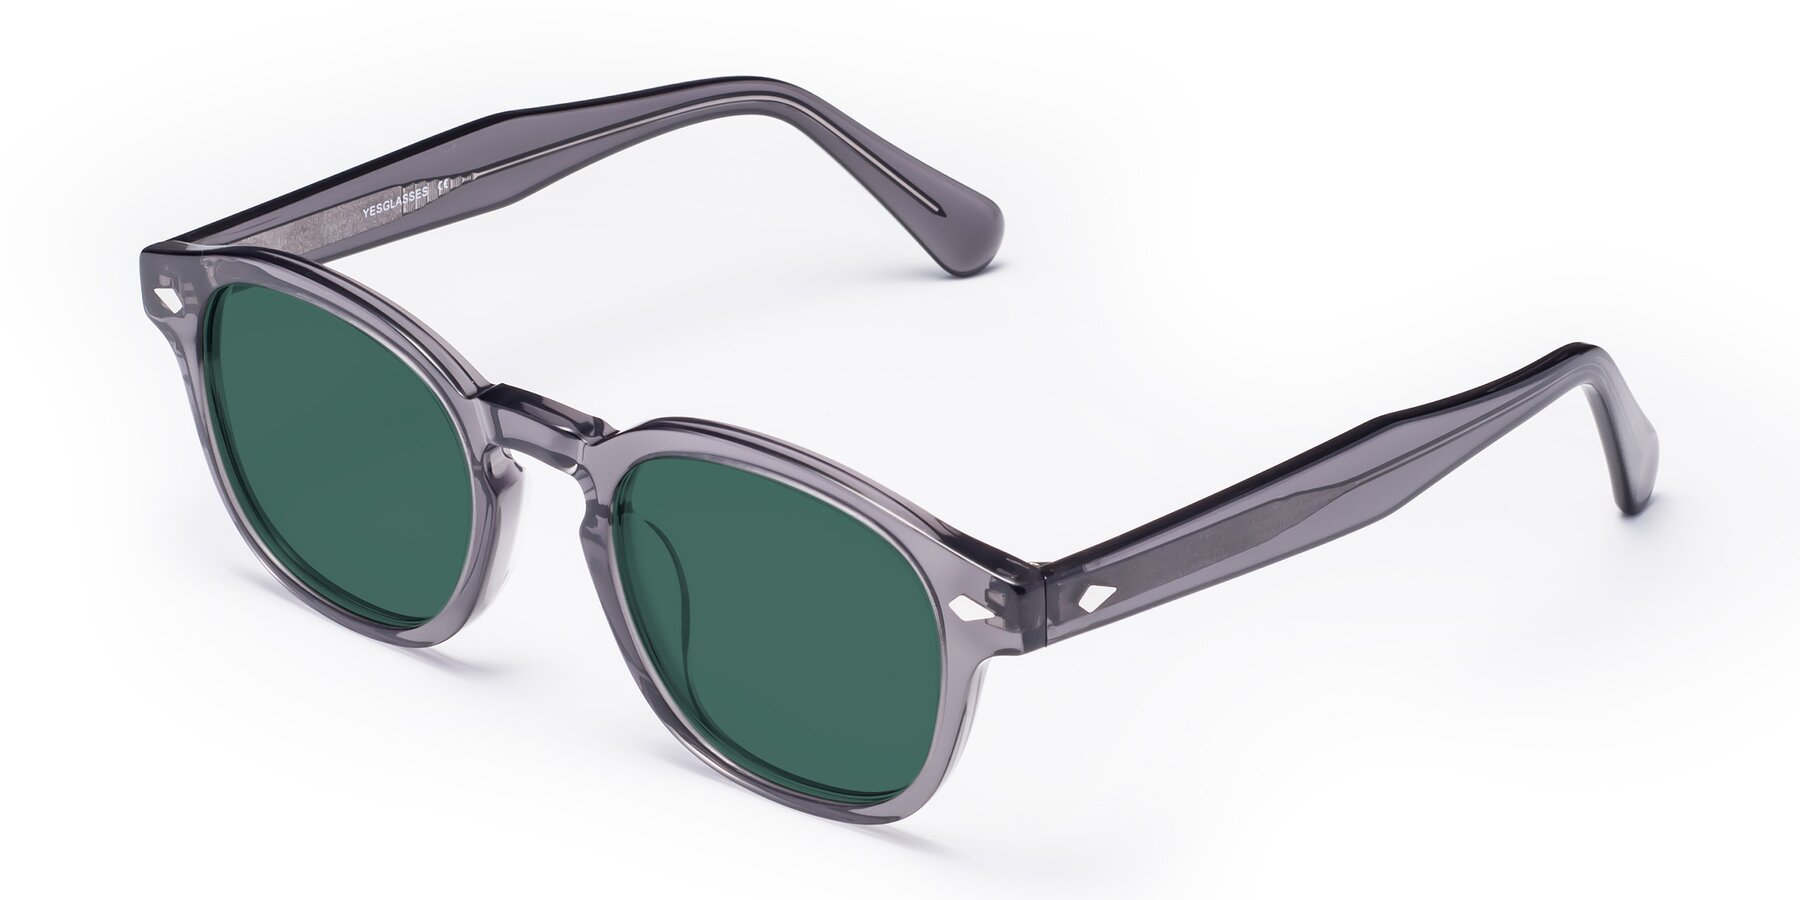 Angle of WALL-E in Translucent Gray with Green Polarized Lenses